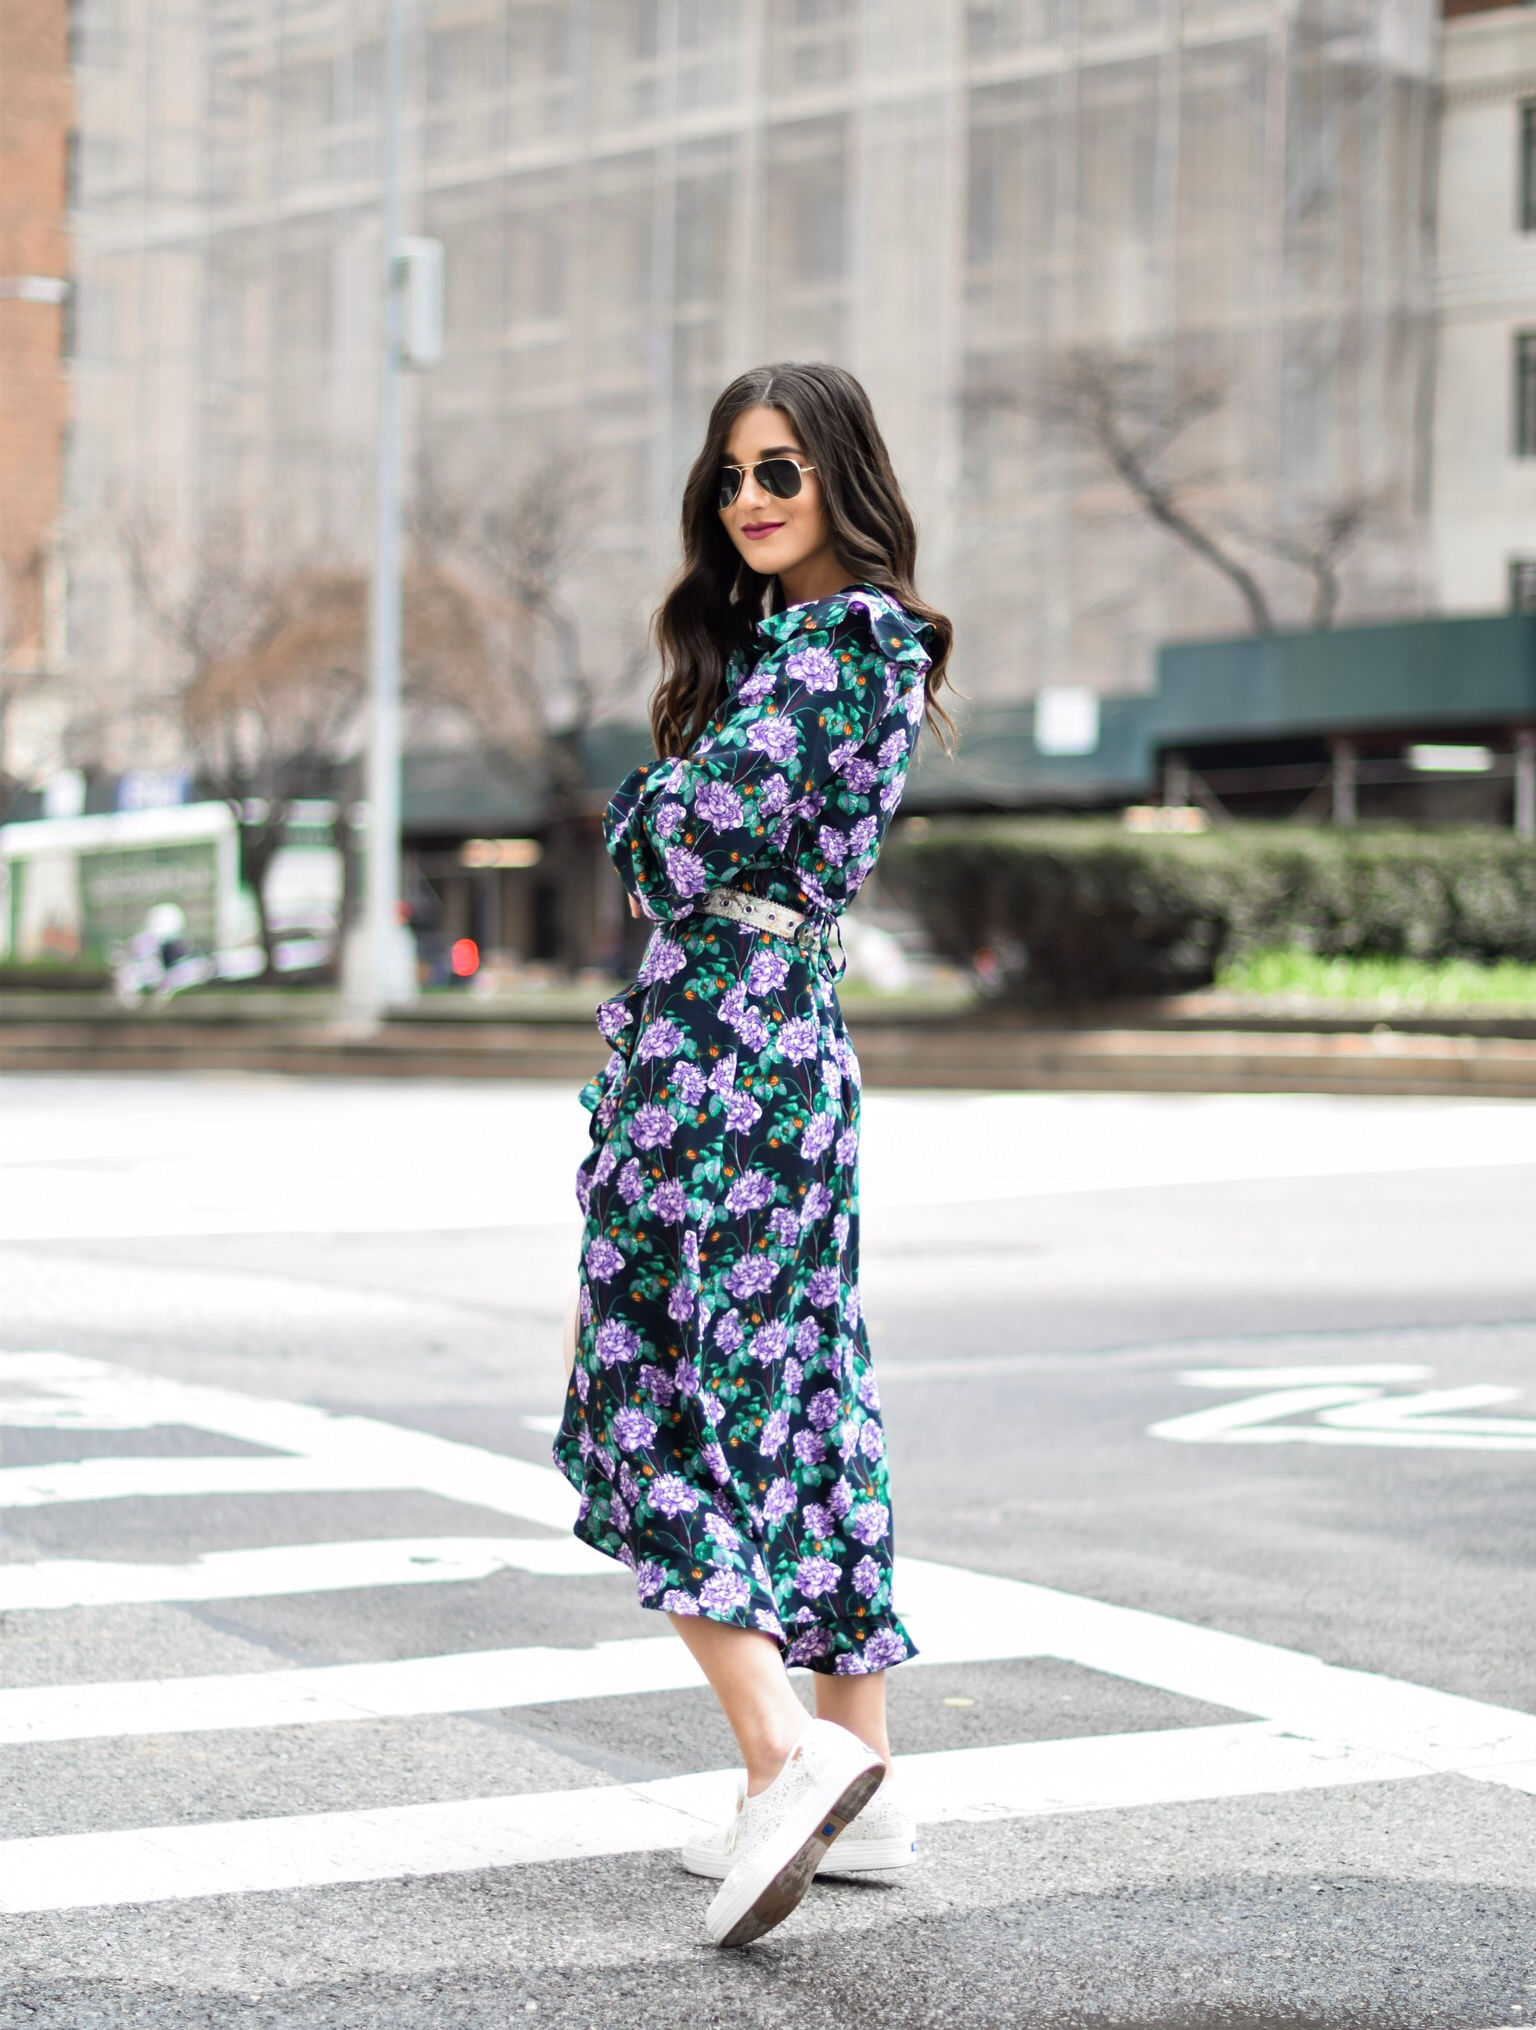 999ba8be7fb3 Embroidered Crochet Keds Floral Maxi Dress Zappos Esther Santer Fashion Blog  NYC Street Style Blogger Outfit